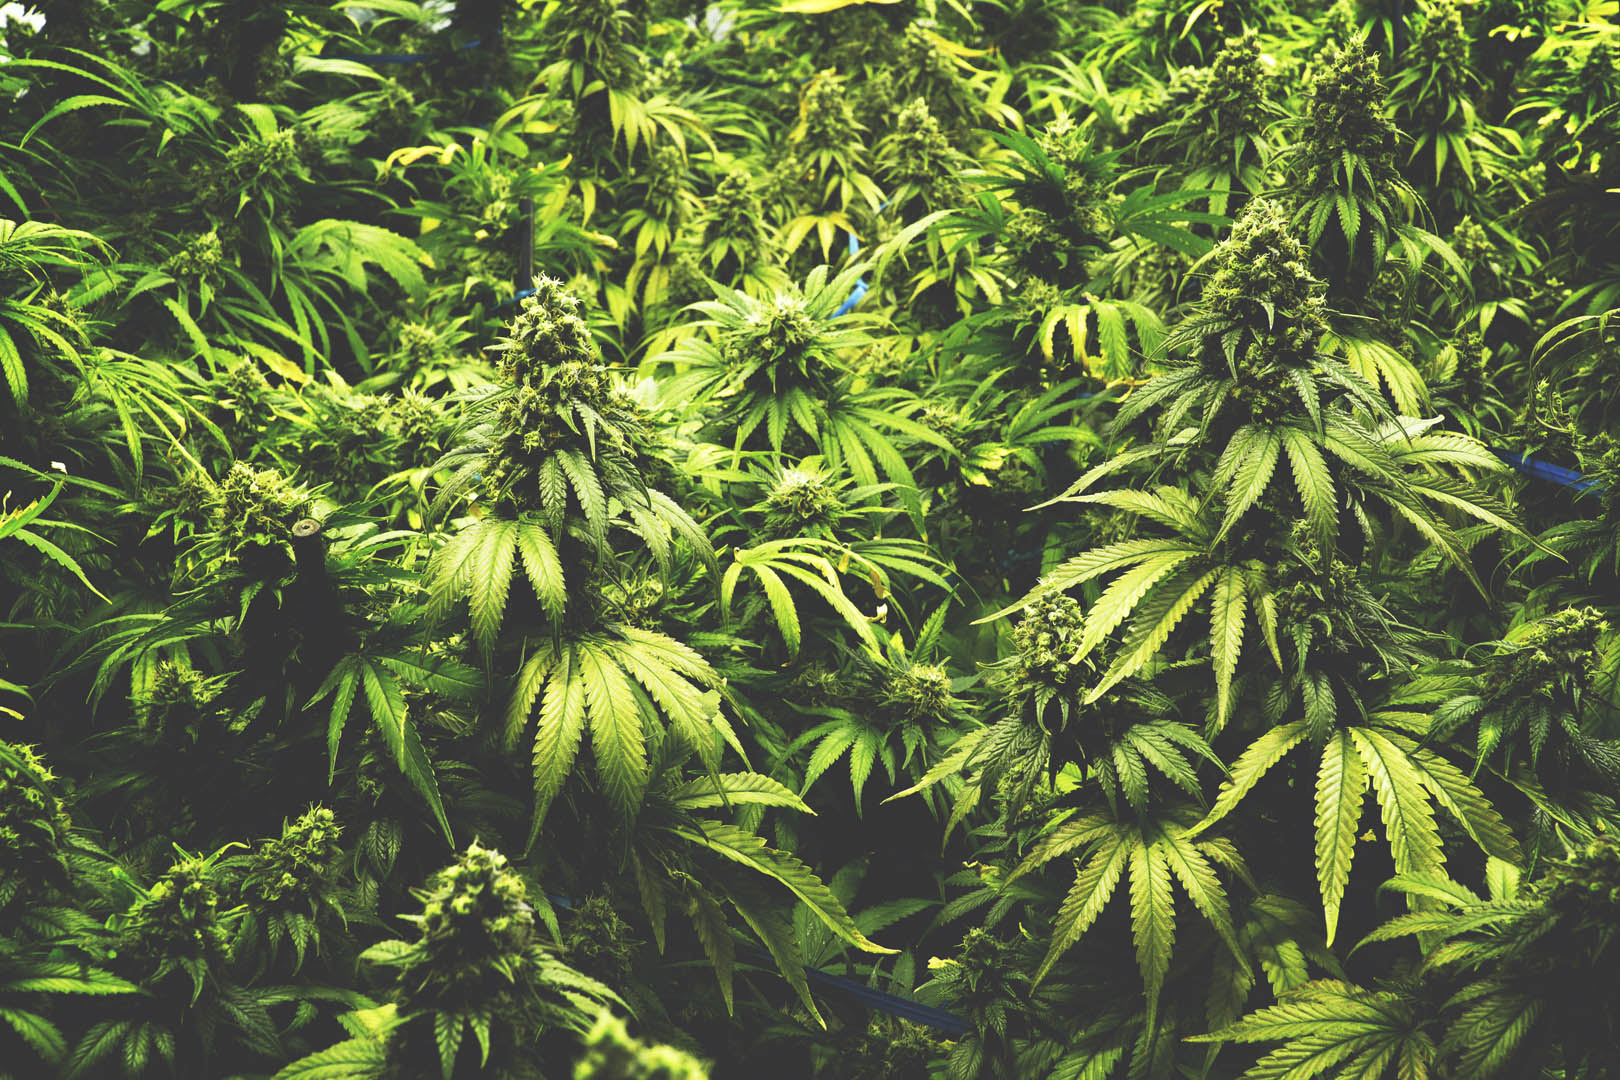 Background Texture of Marijuana Plants at Indoor Cannabis Farm Vintage